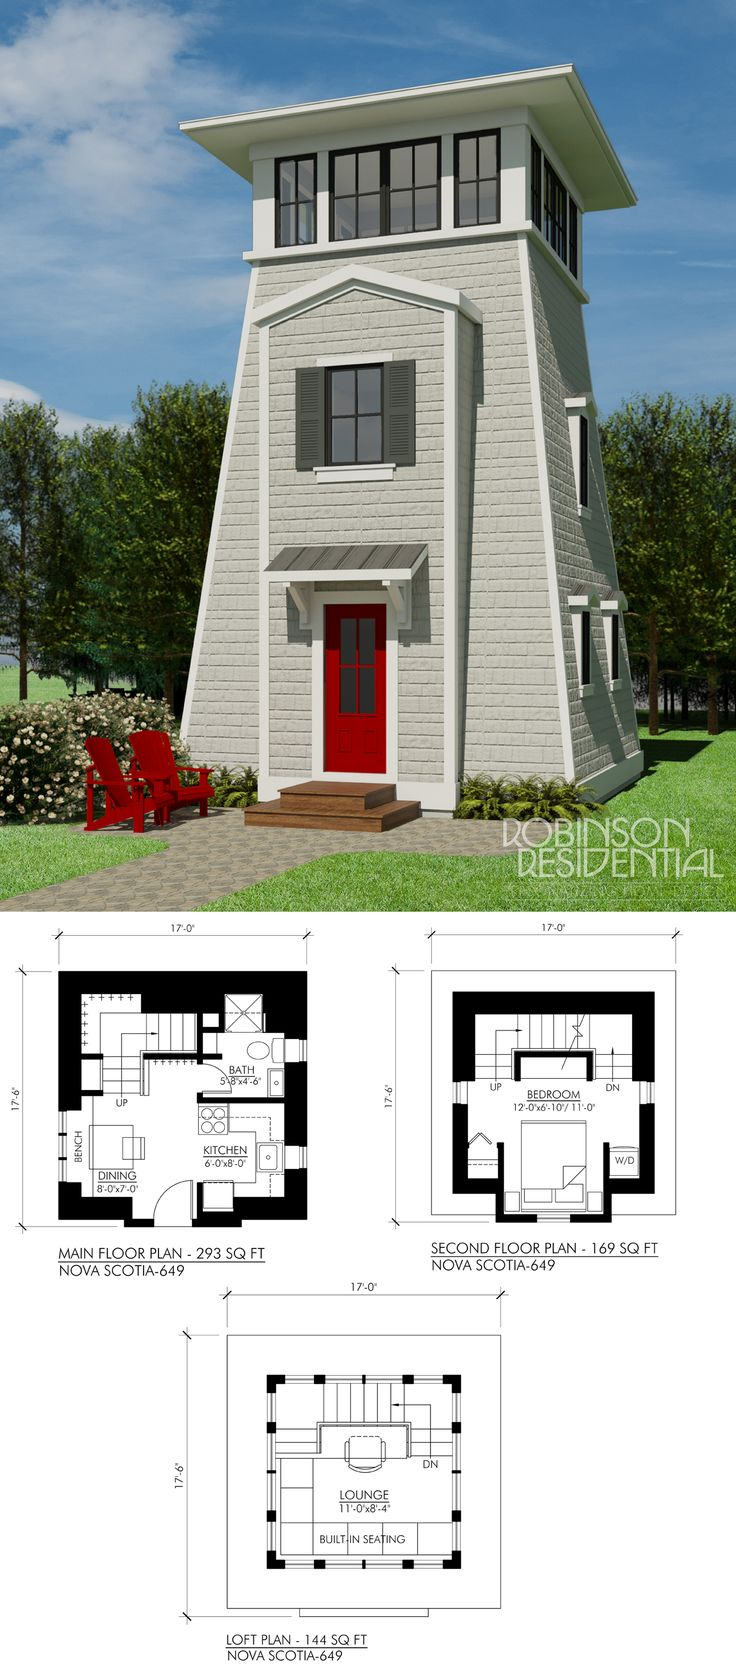 Best 25 small homes ideas on pinterest small home plans for House turret designs